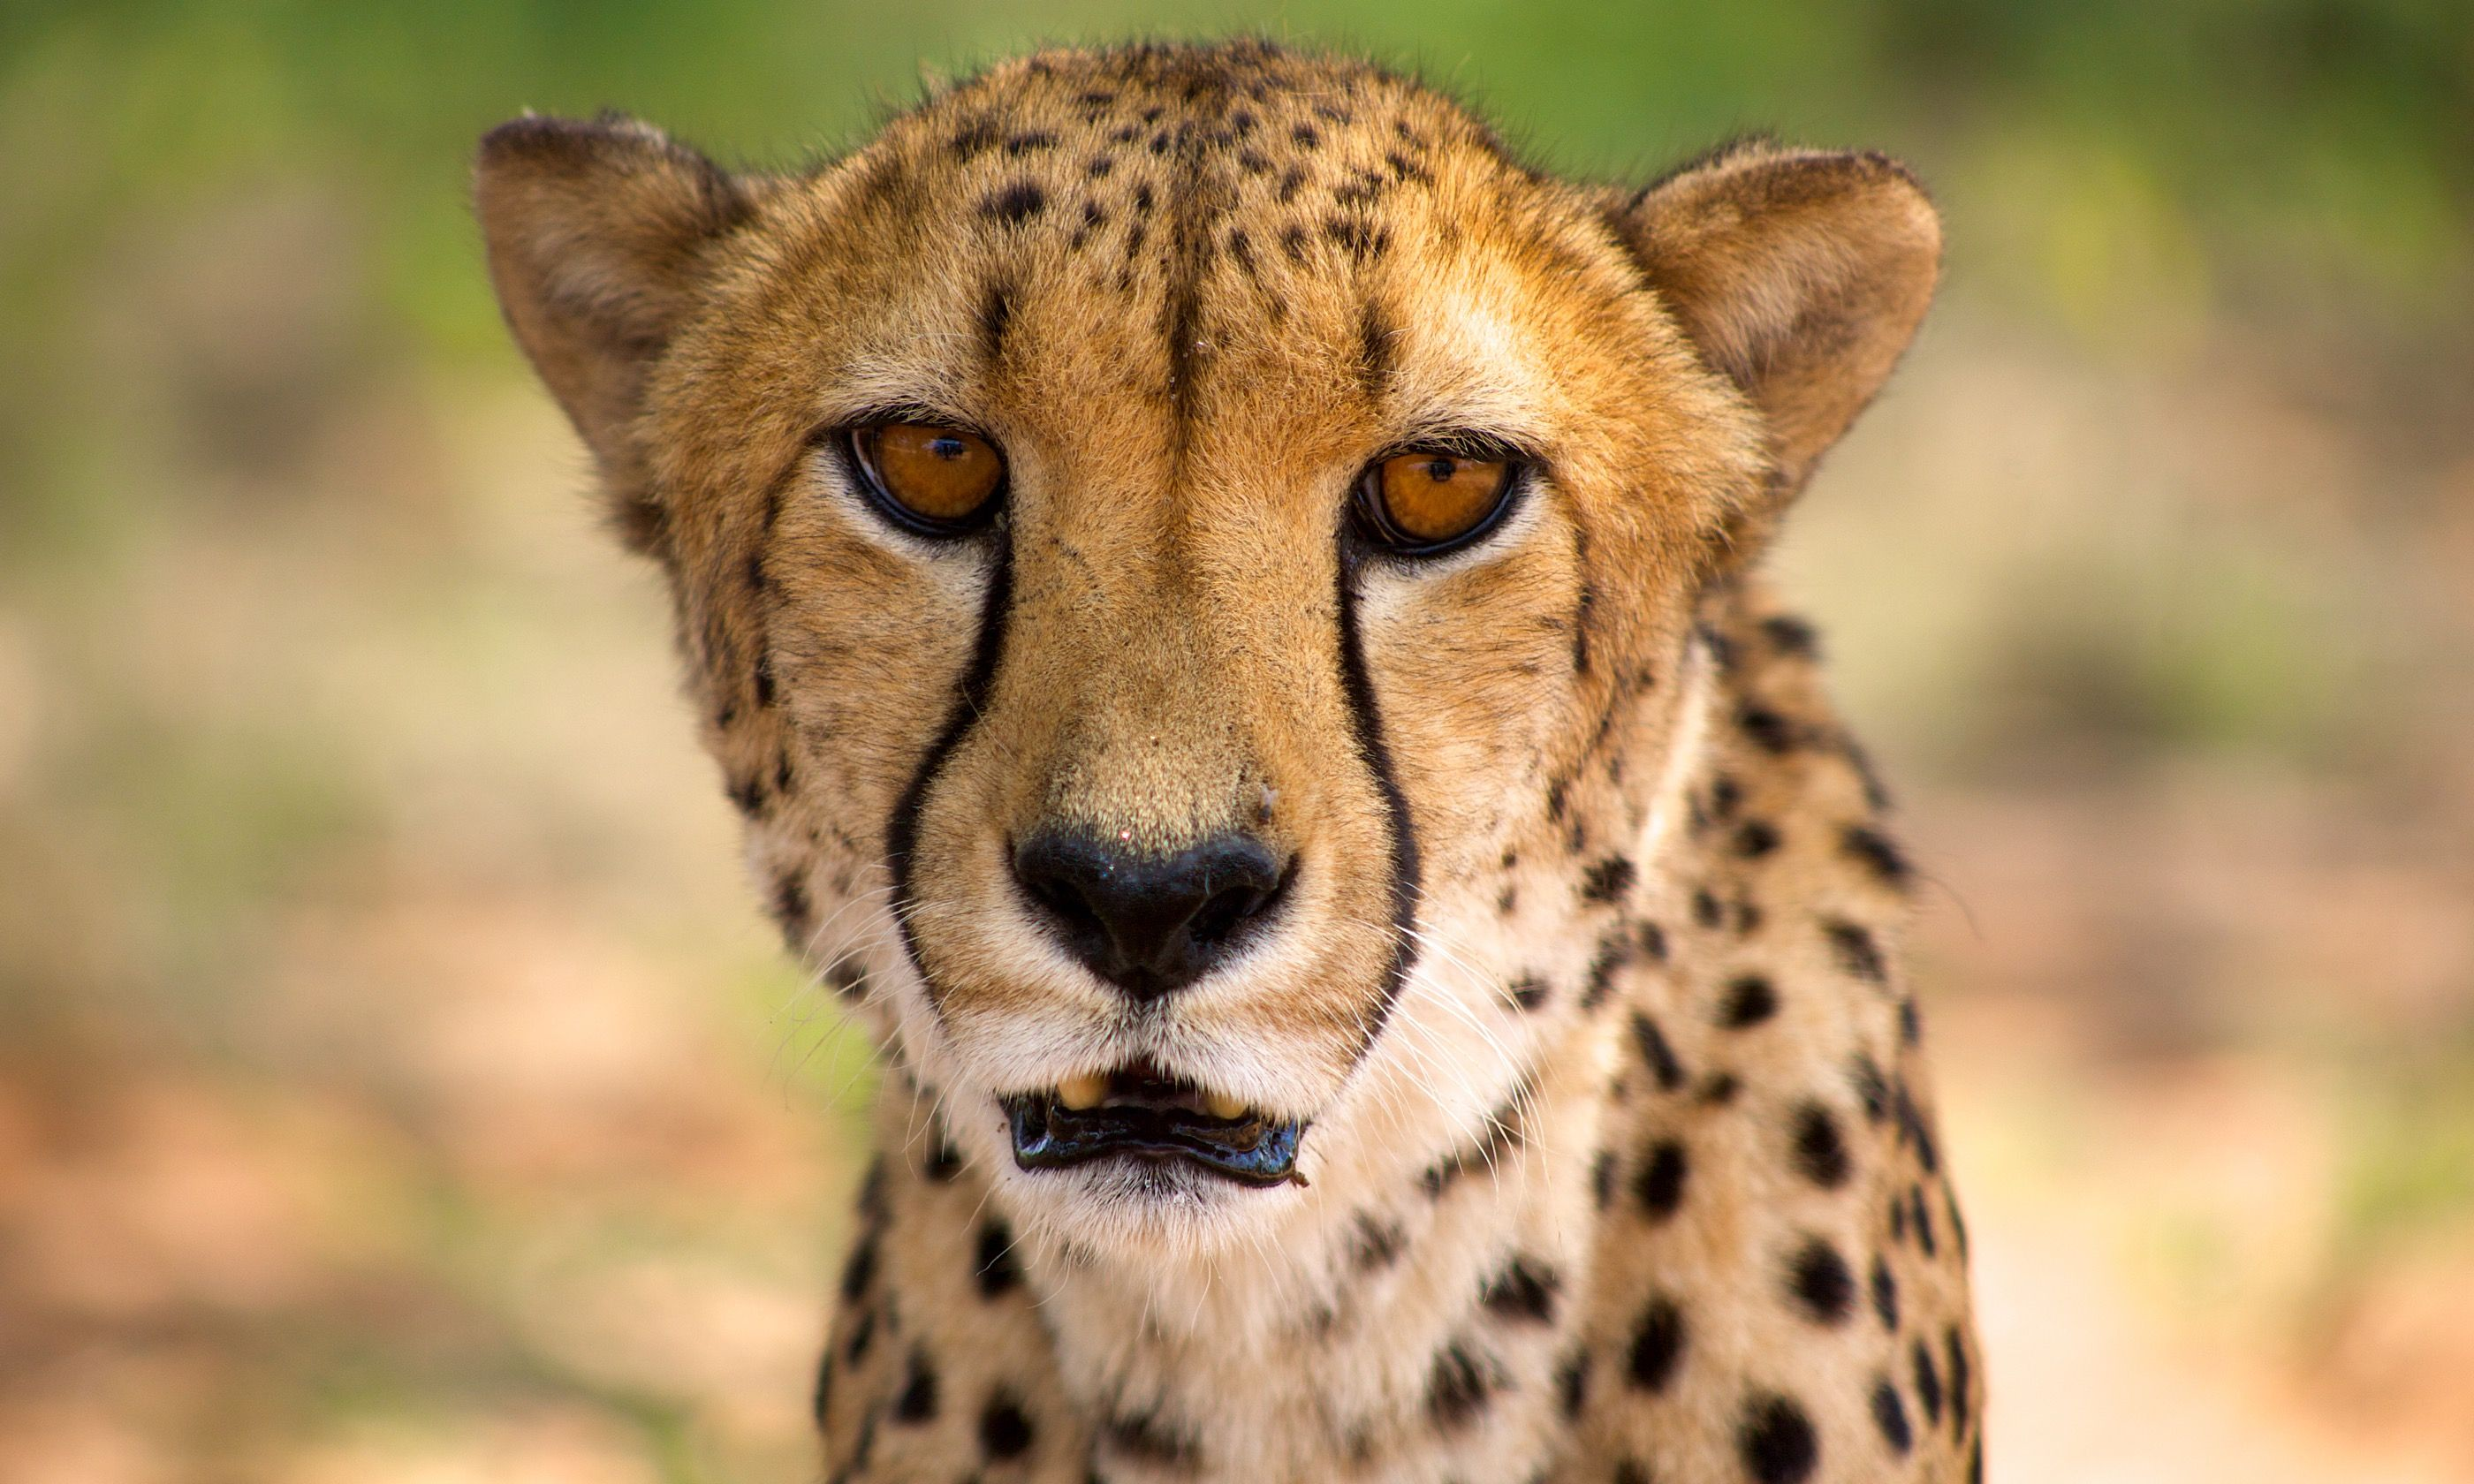 Close-up of cheetah in Harnas (Shutterstock.com)